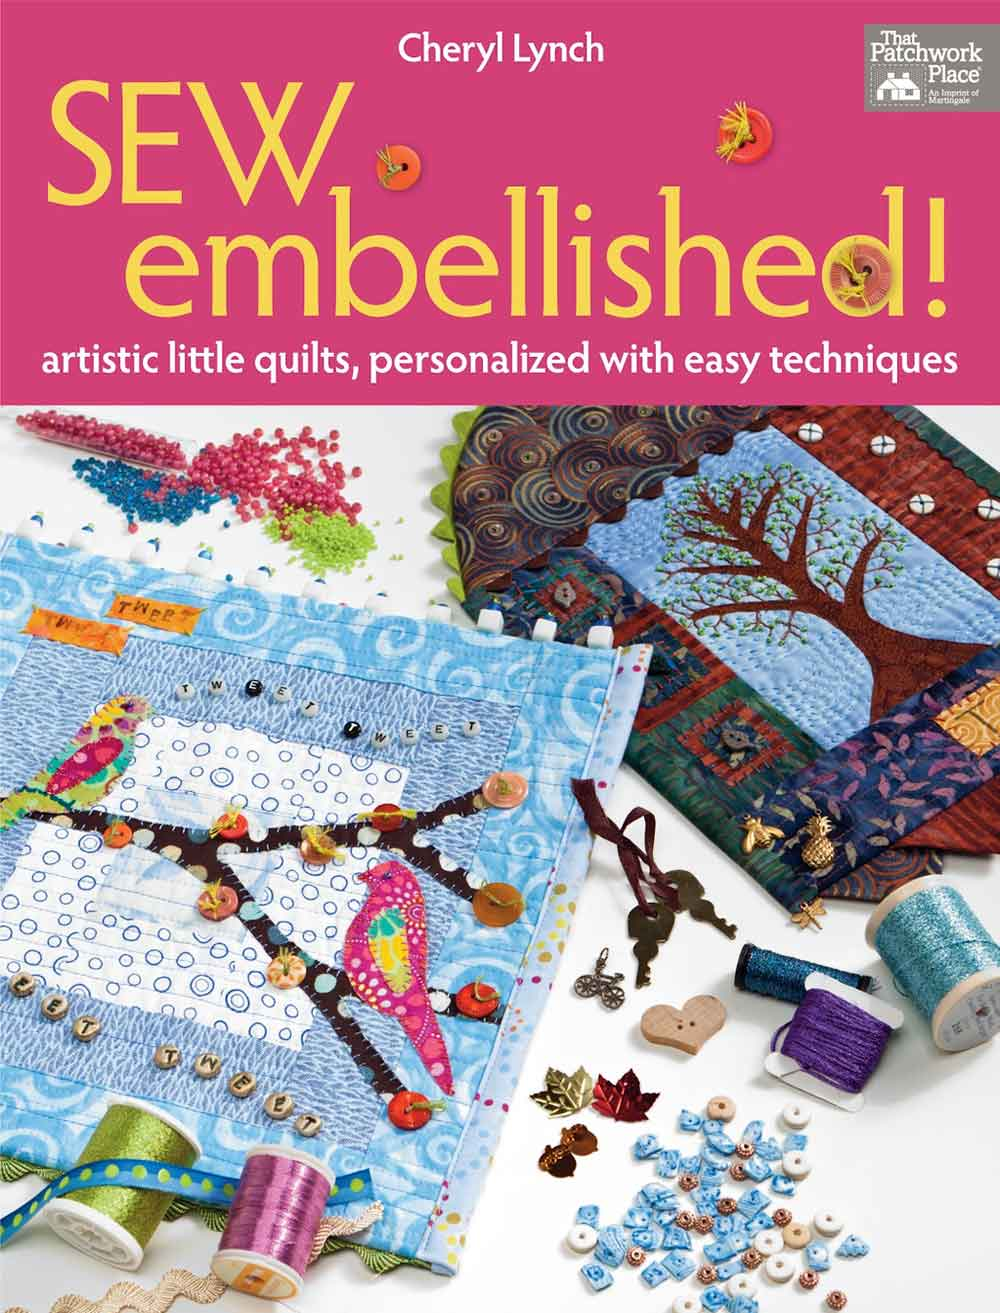 Sew Embellished!: Artistic Little Quilts, Personalized with Easy Techniques